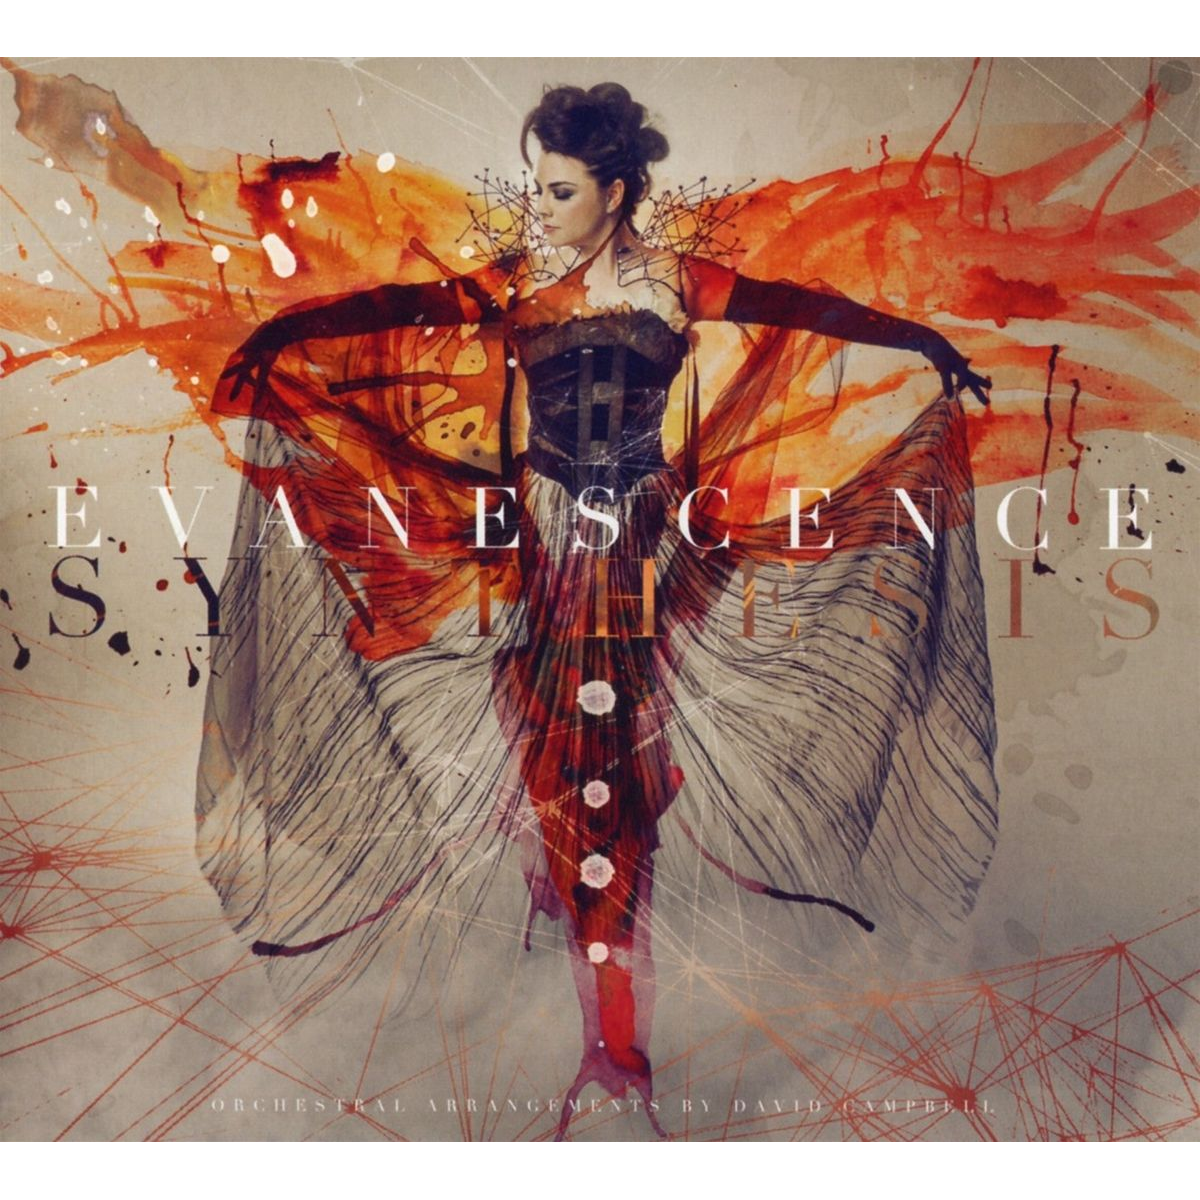 Sony Music Evanescence - Synthesis, CD World music